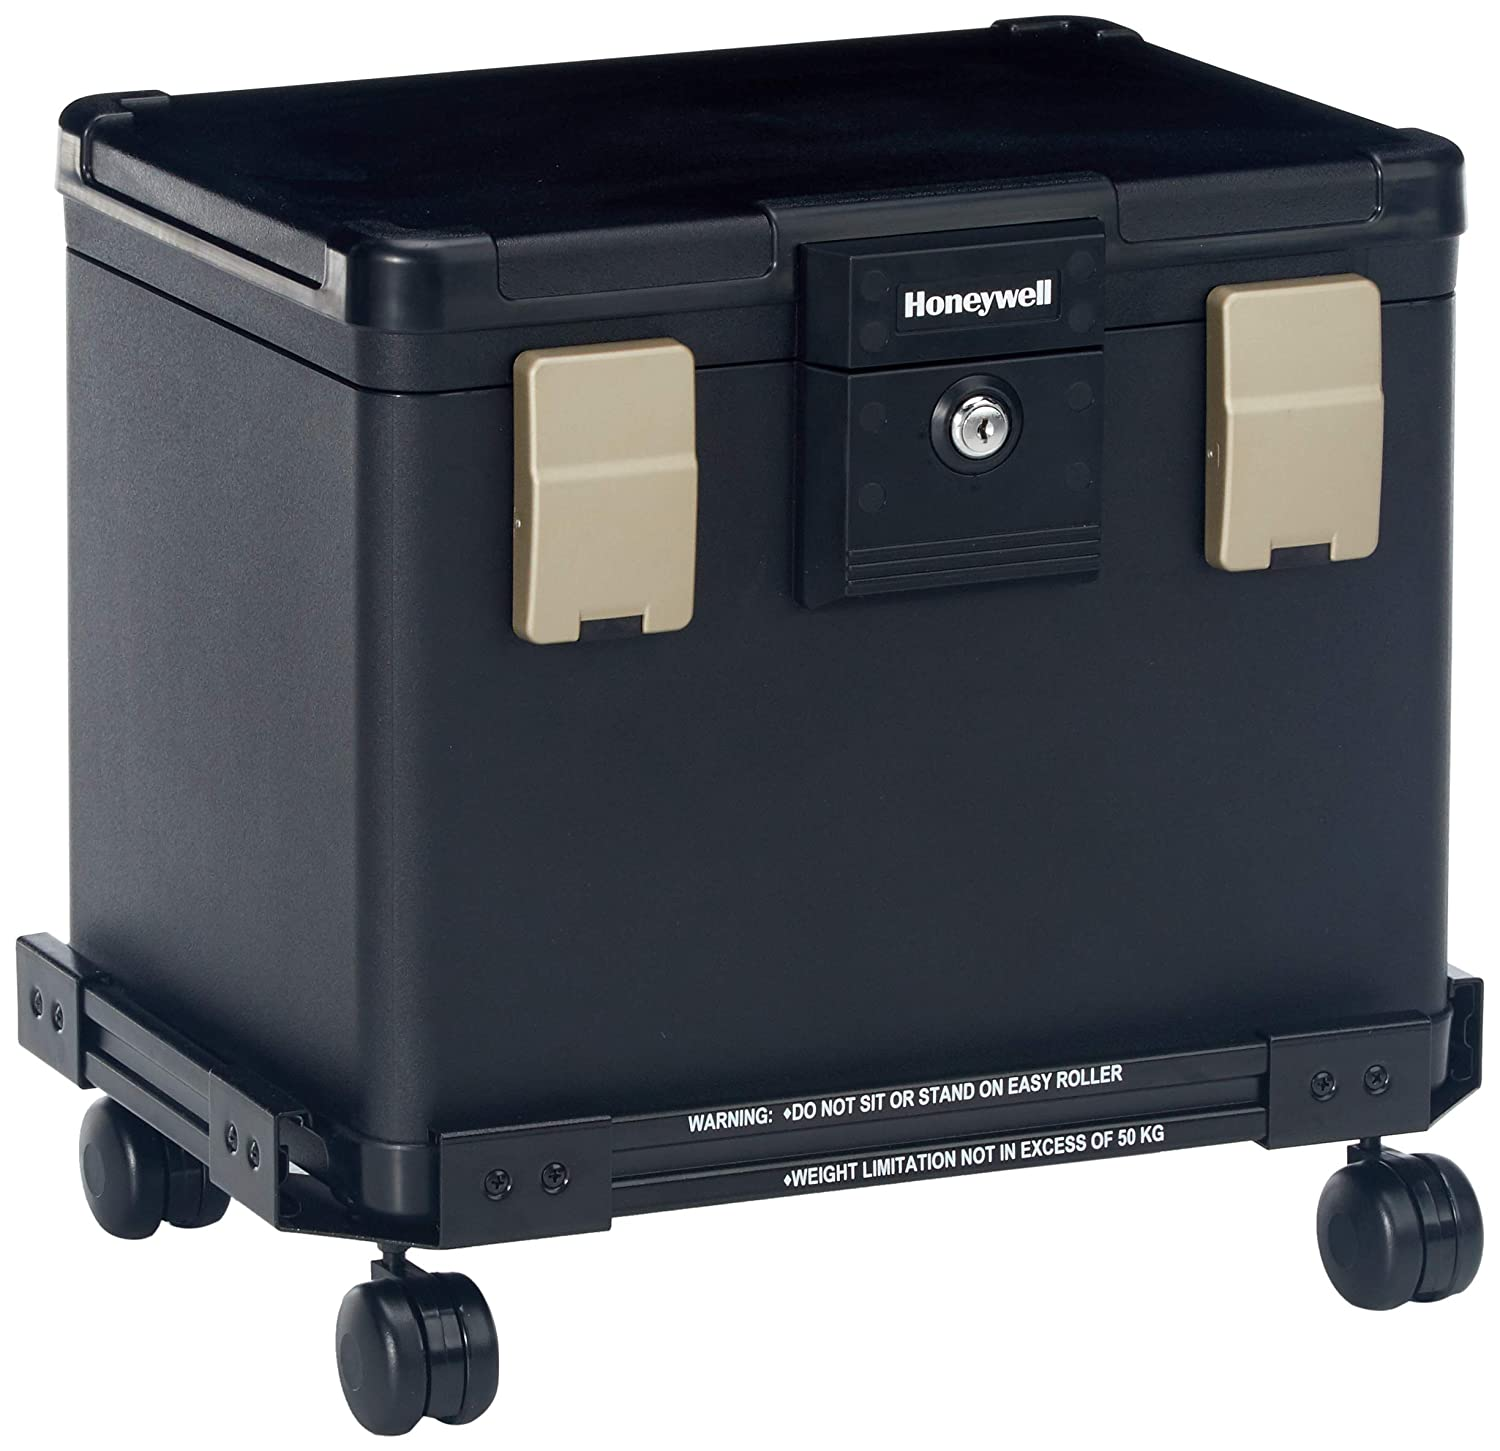 Honeywell Safes & Door Locks - Honeywell Safes & Door Locks Fire Waterproof Filing Safe Box Chest with Wheel Cart 1106W, Medium